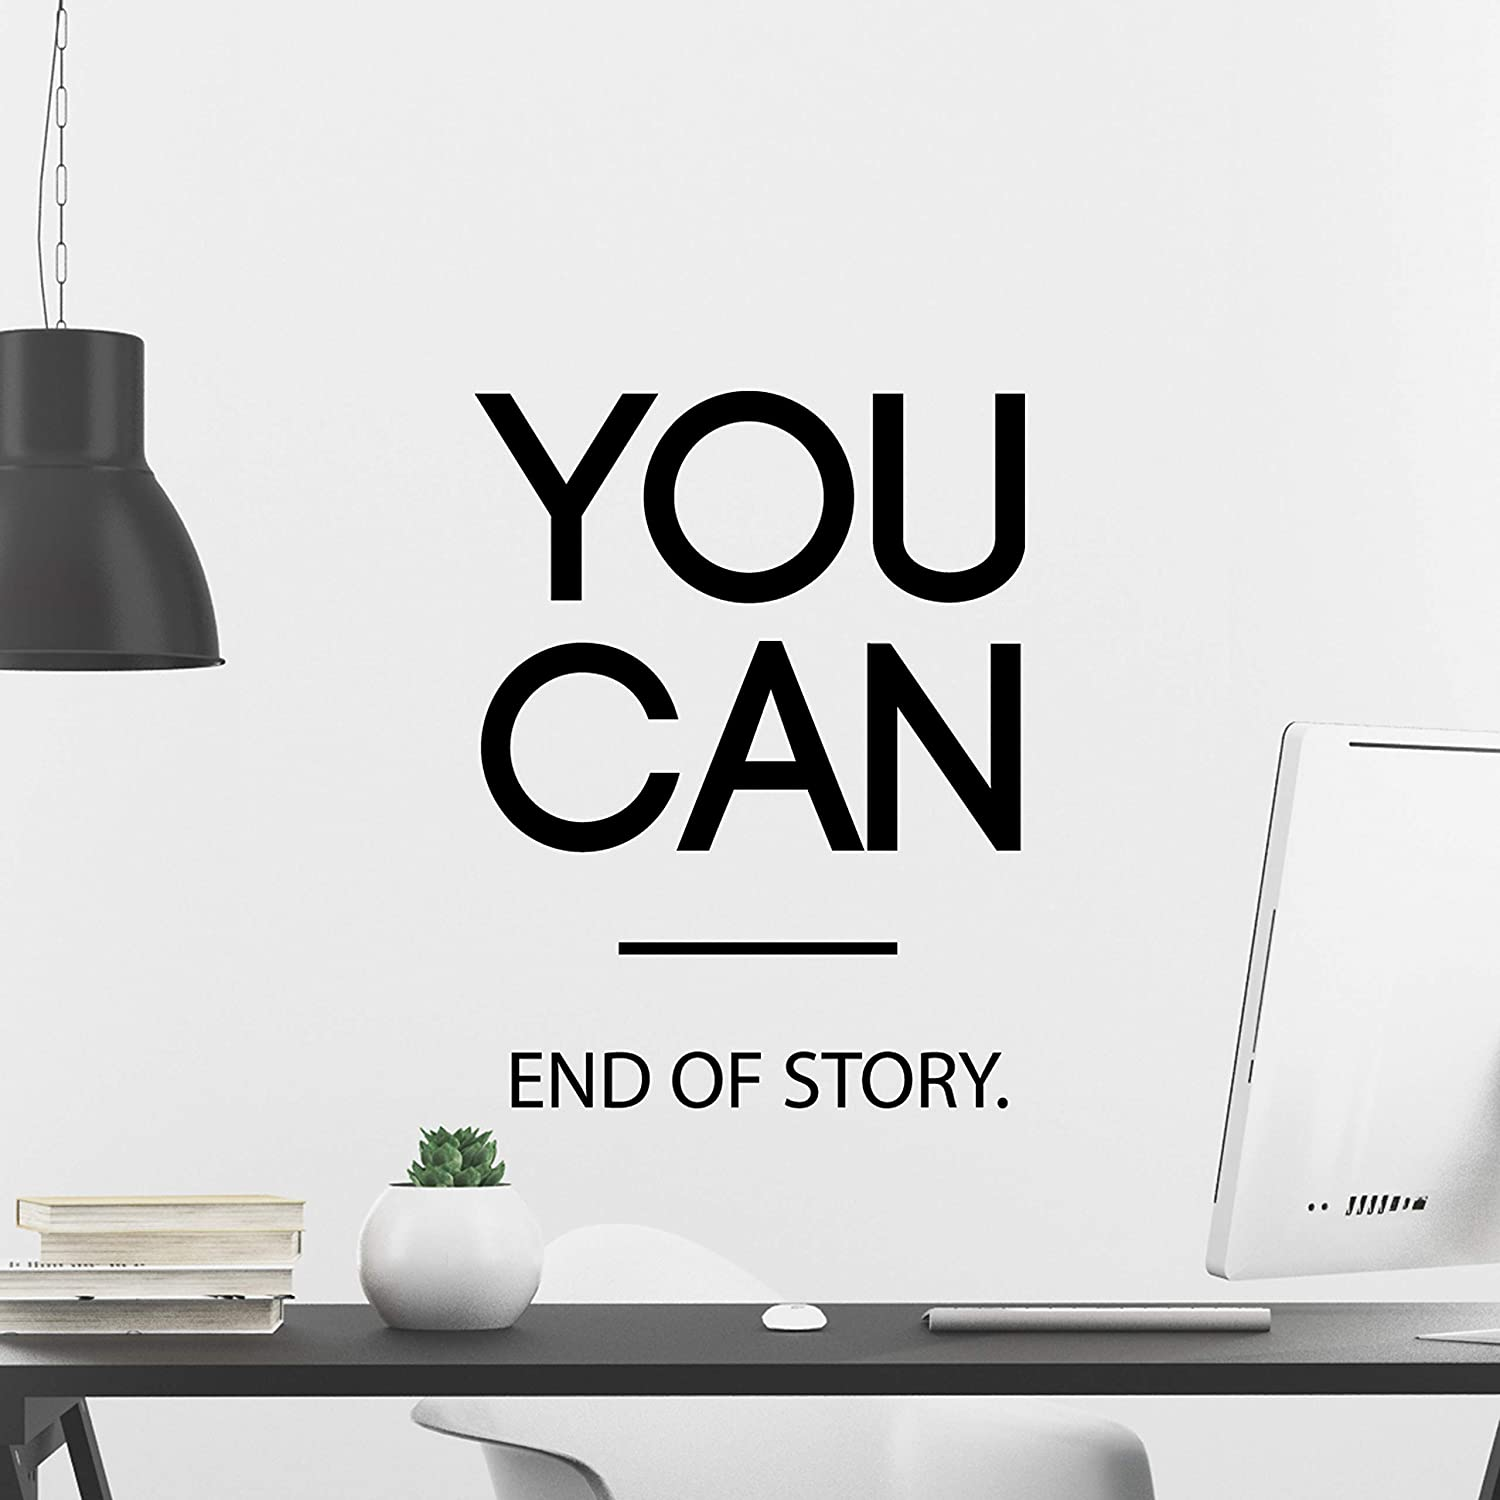 My Vinyl Story You CAN End of Story Wall Decal Inspirational Wall Decal Motivational Office Decor Quote Inspired Motivated Positive Wall Art Vinyl Gym Sticker School Classroom Decor